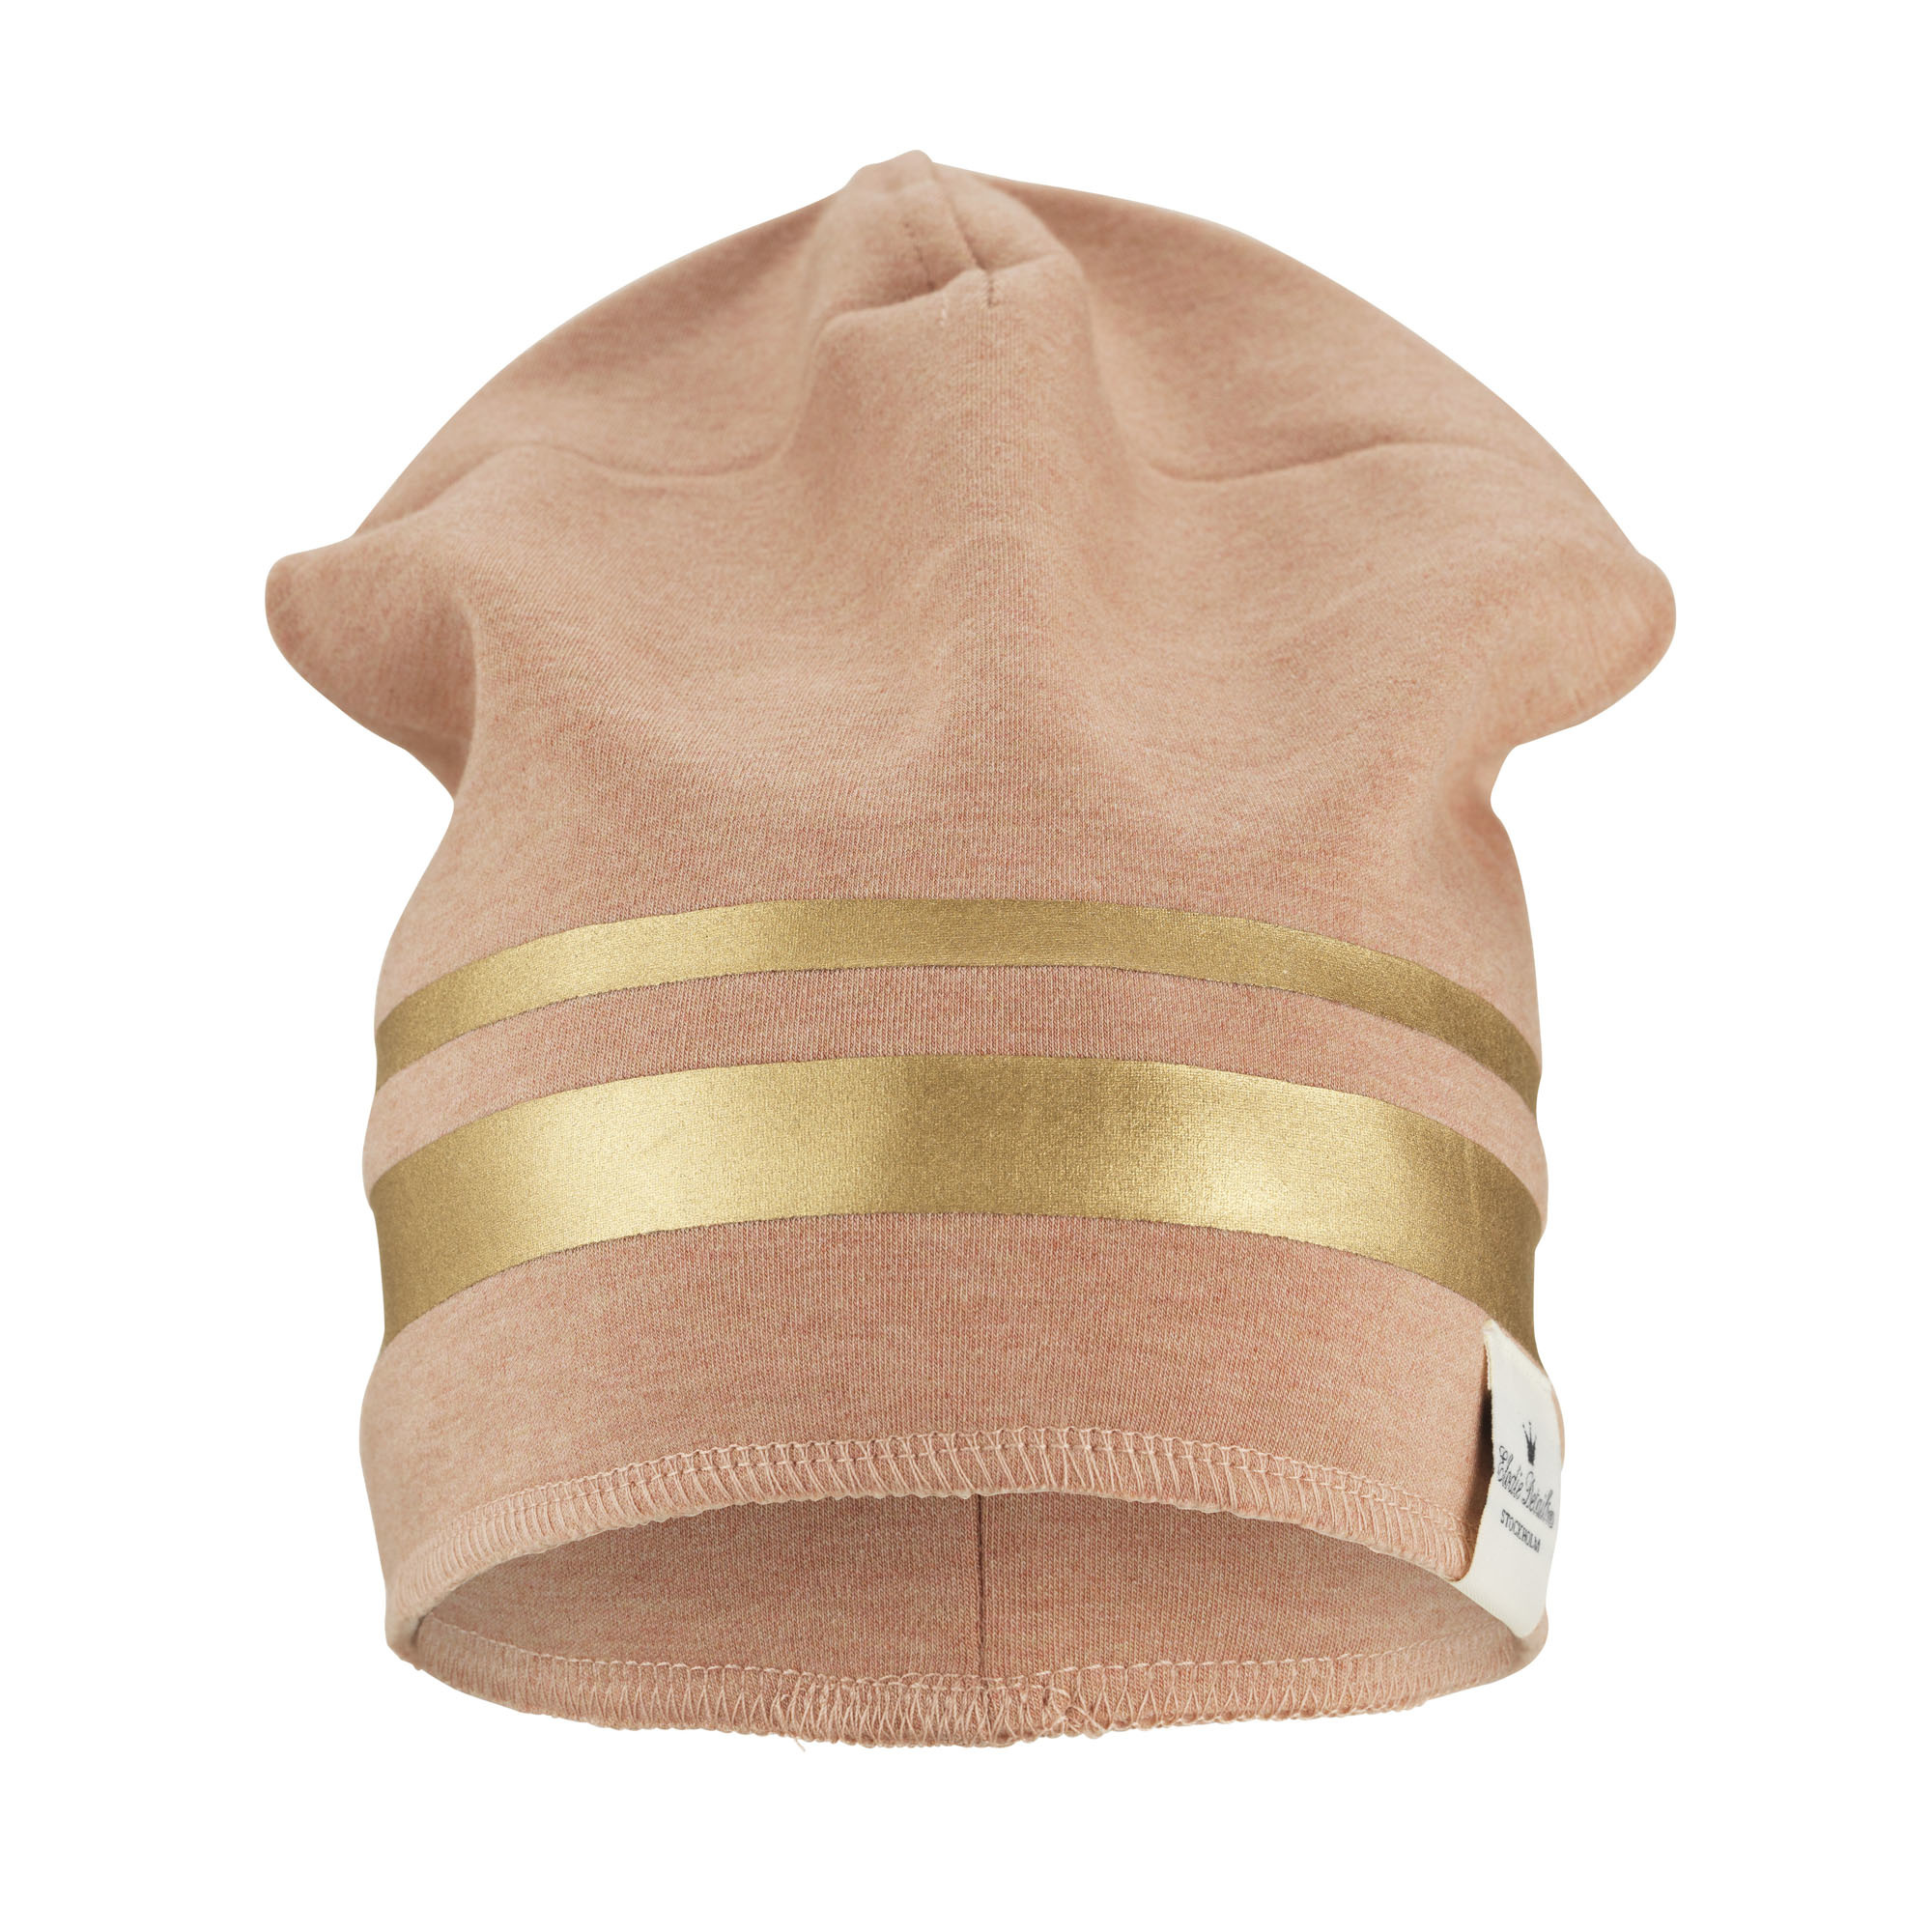 Elodie Details Elodie Details Winter Mutsje / Beanies Gilded Faded Rose 2-3j